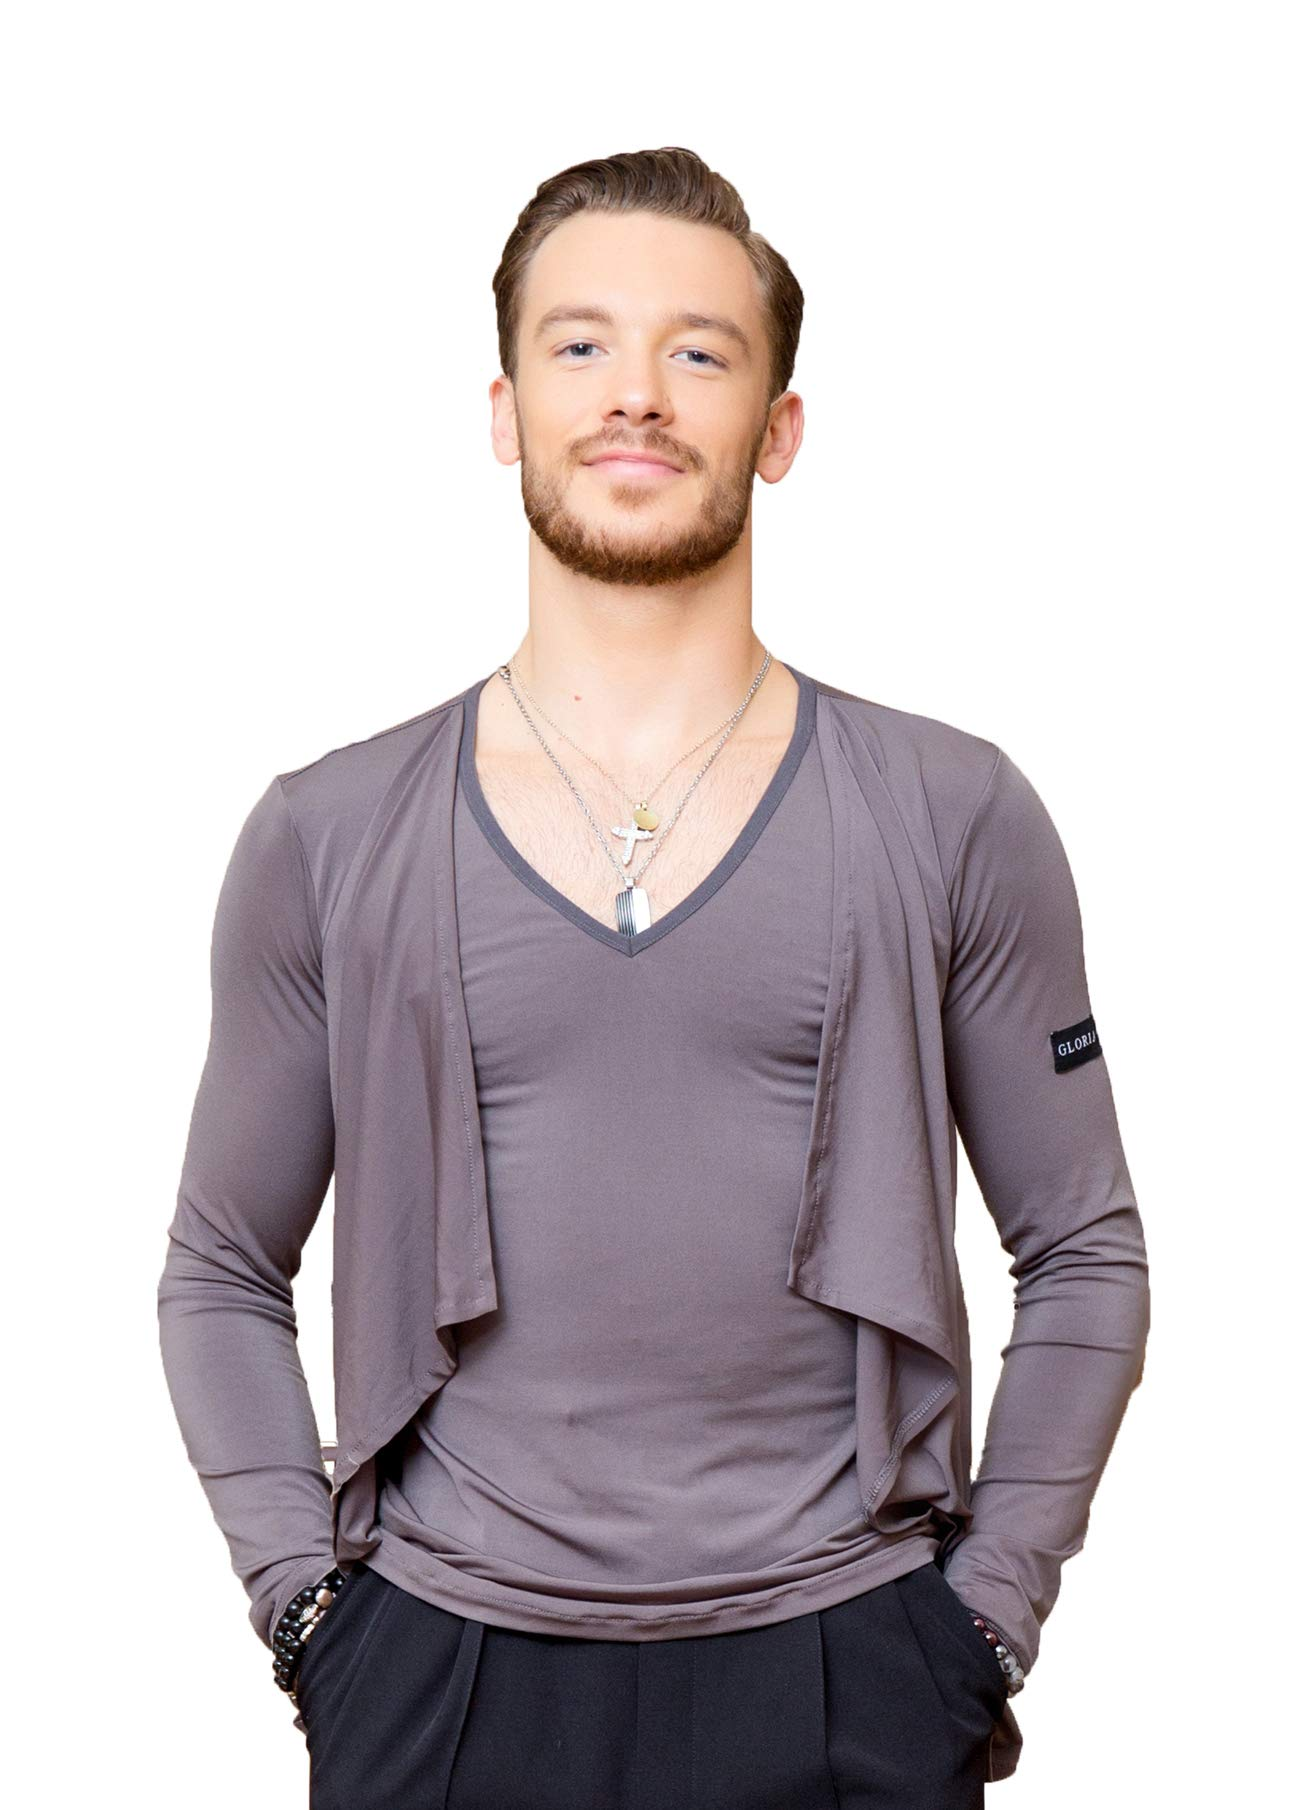 SuperStar Series:G5012 latin ballroom dance professional simulated two-piece design tops/shirt for men ((SBS) gray, M) by SCGGINTTANZ